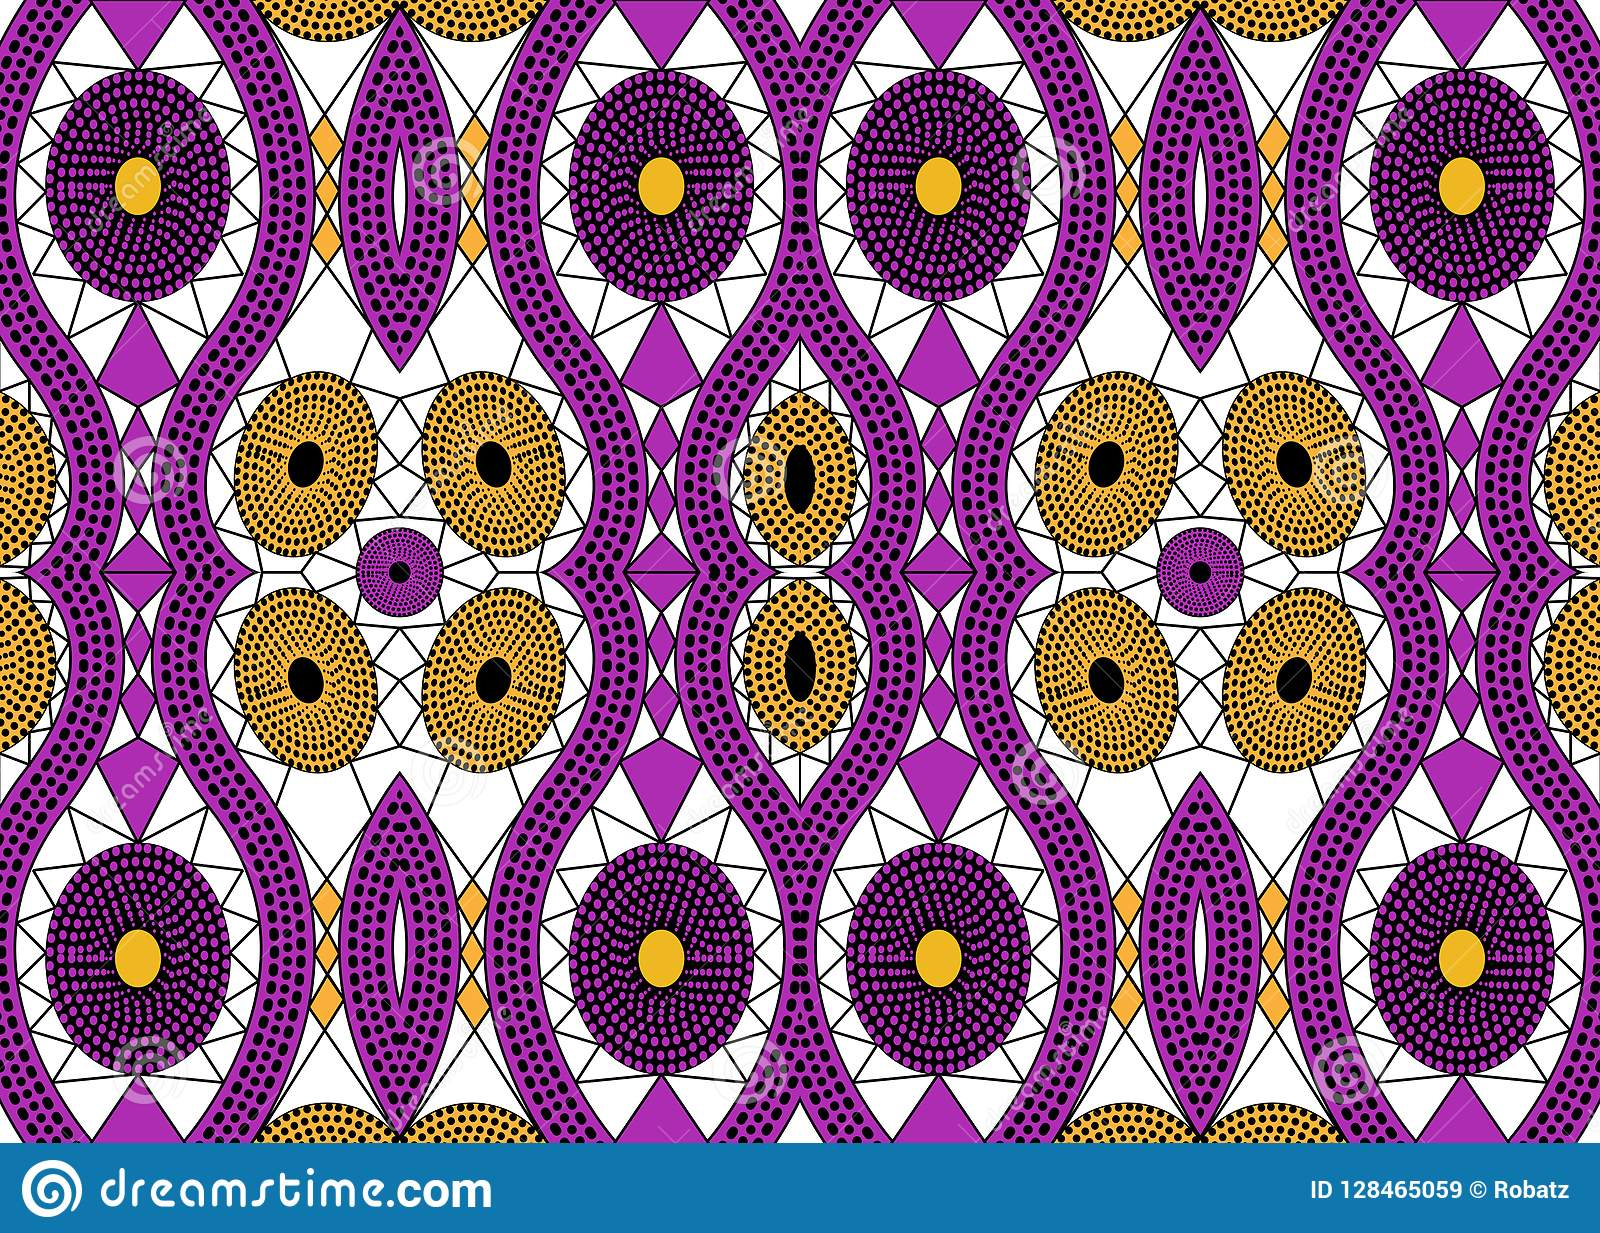 d61f81cd2c3d Royalty-Free Stock Photo. African Print fabric